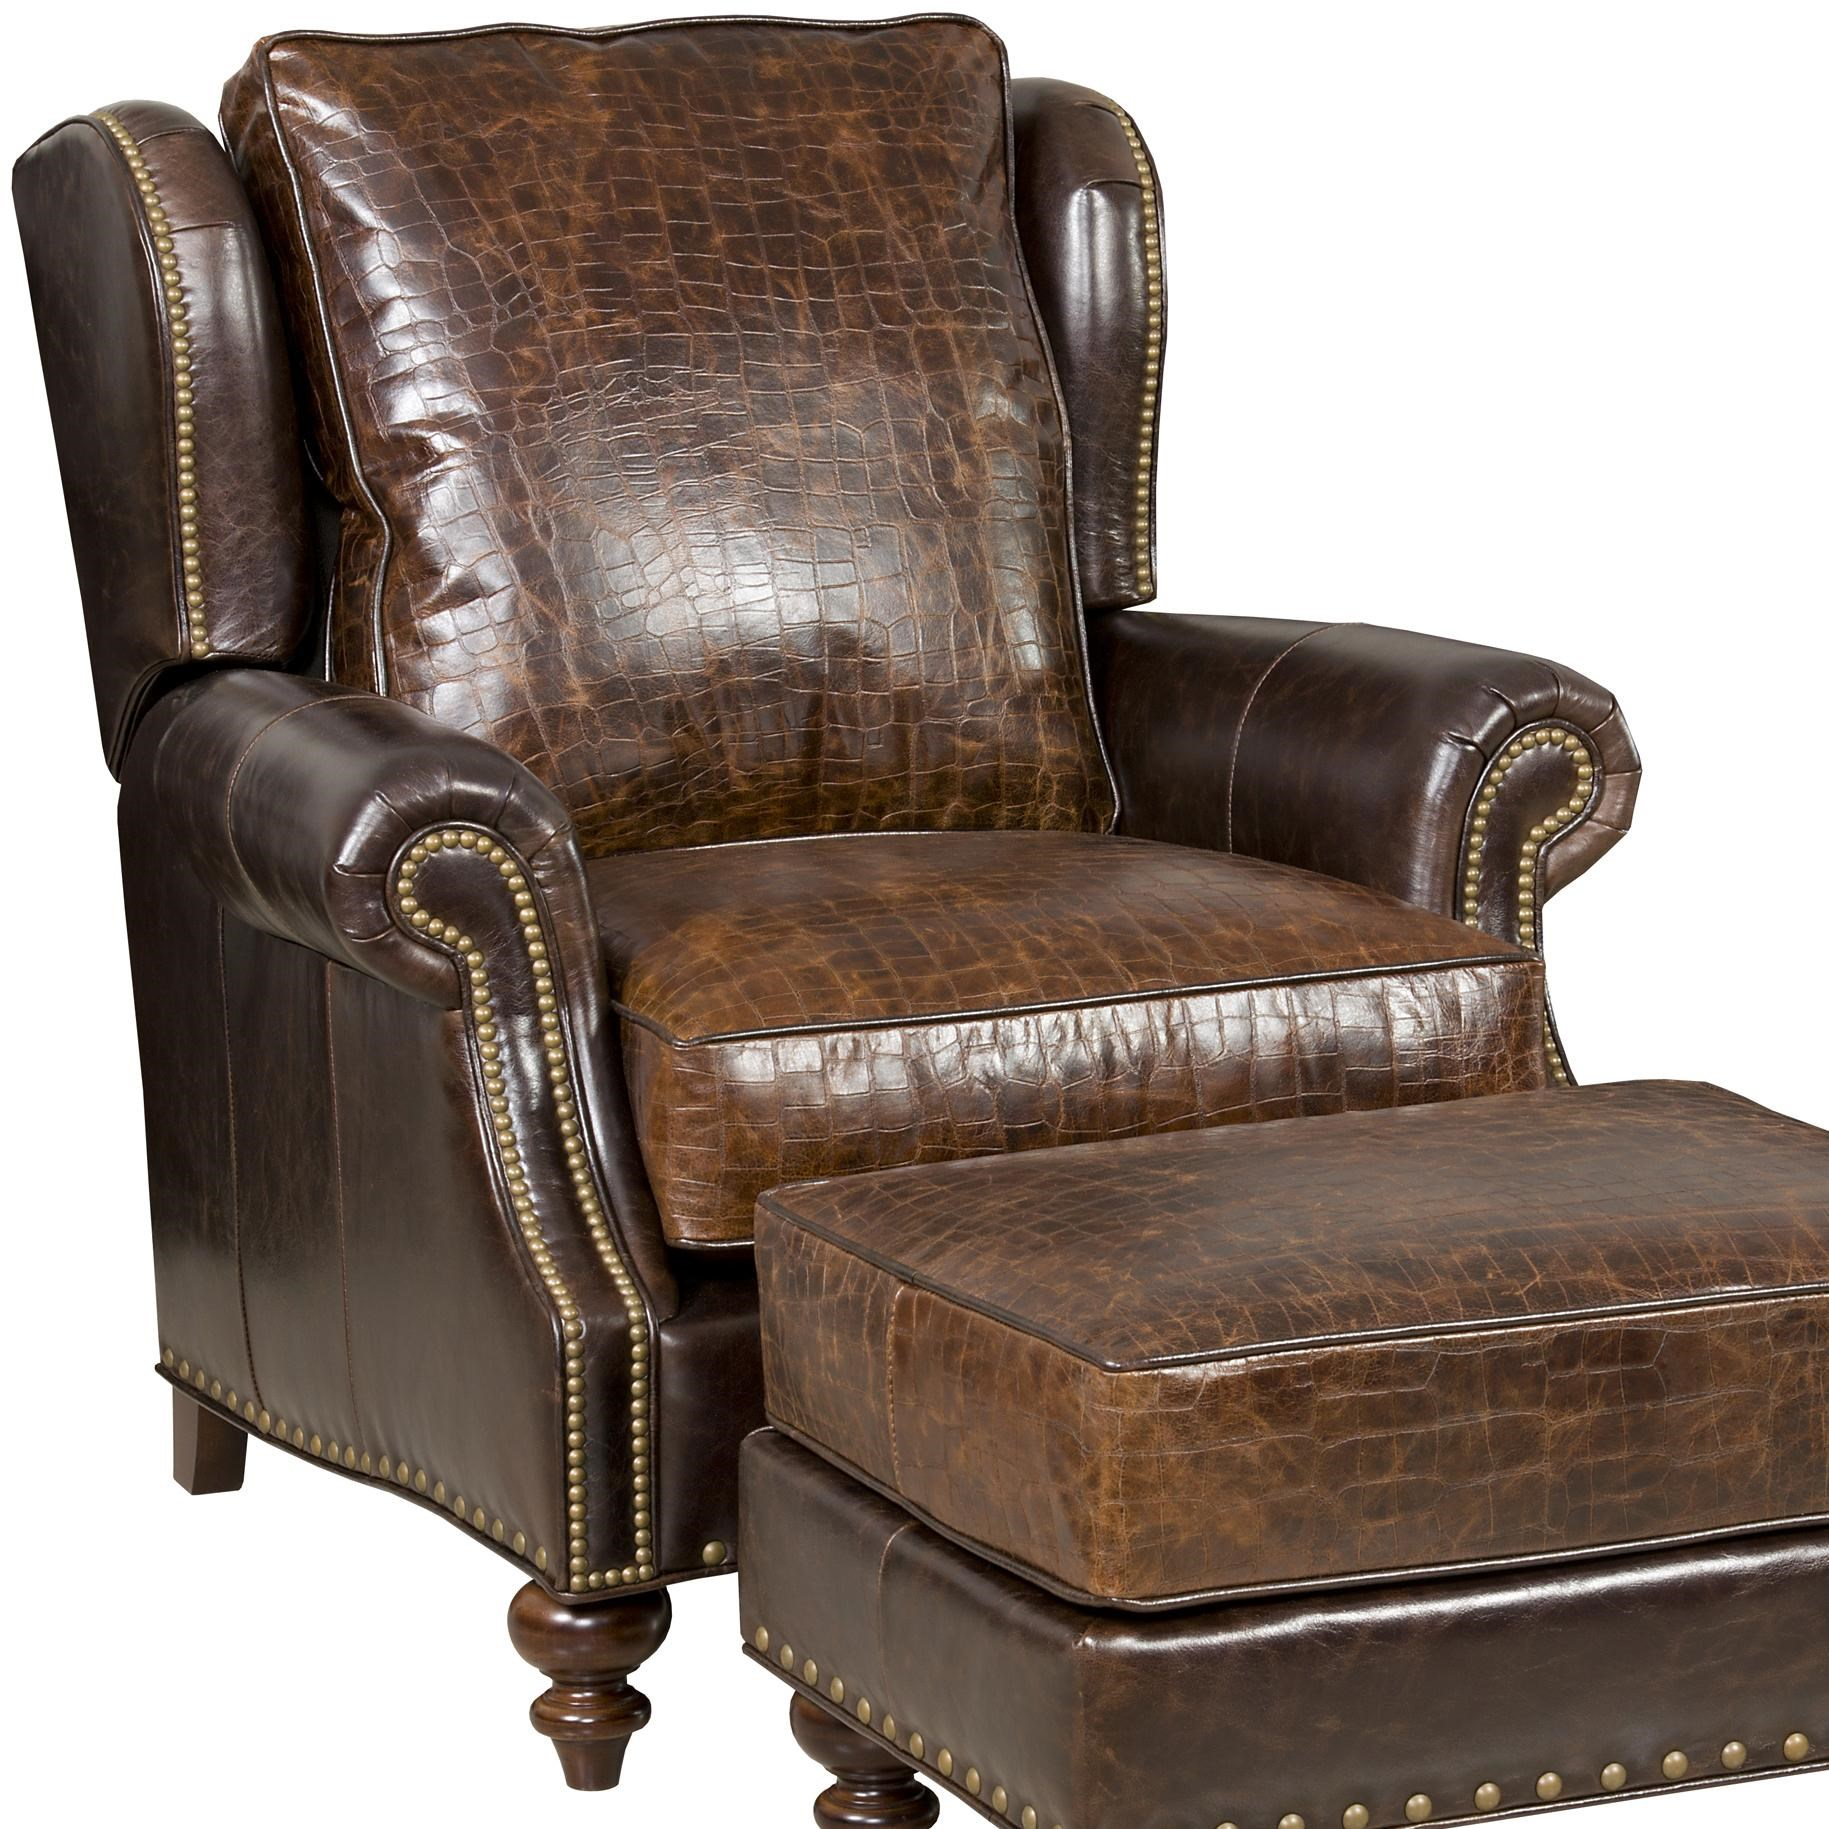 cheap leather wingback chairs how to make sex chair recliners perfect collage recliner with